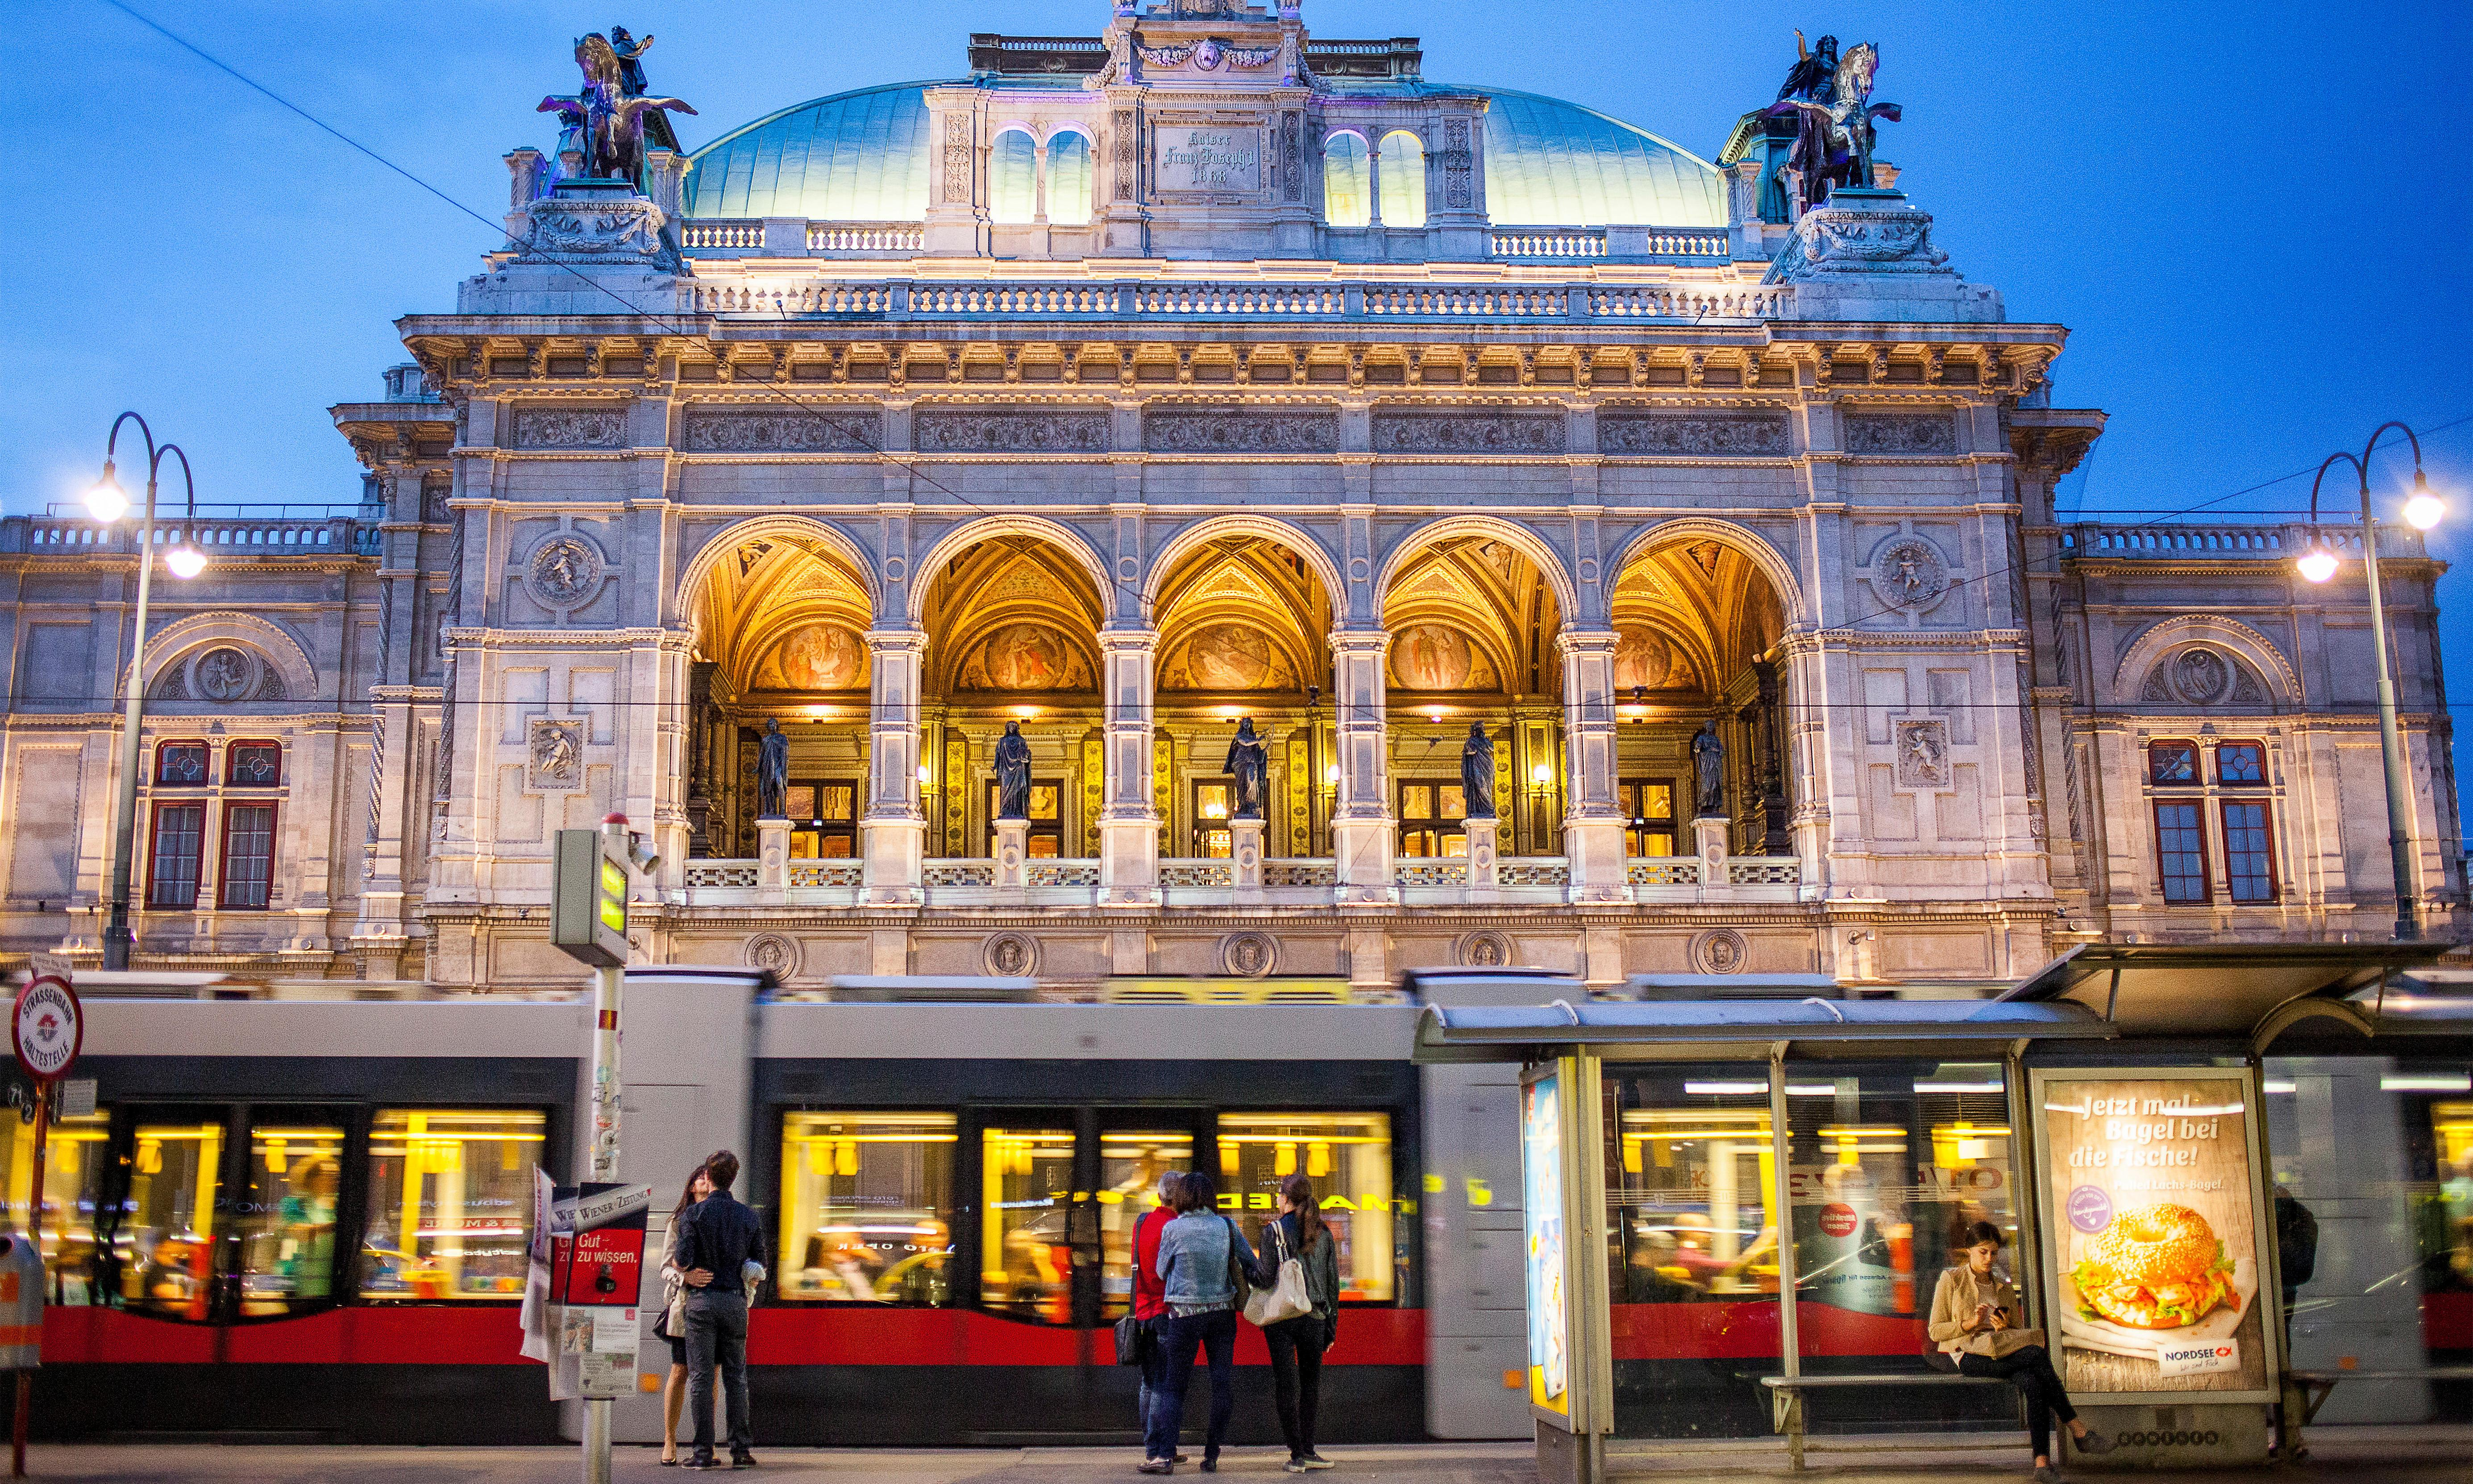 Passengers incensed: Vienna adds perfumed trains to €1 a day travel